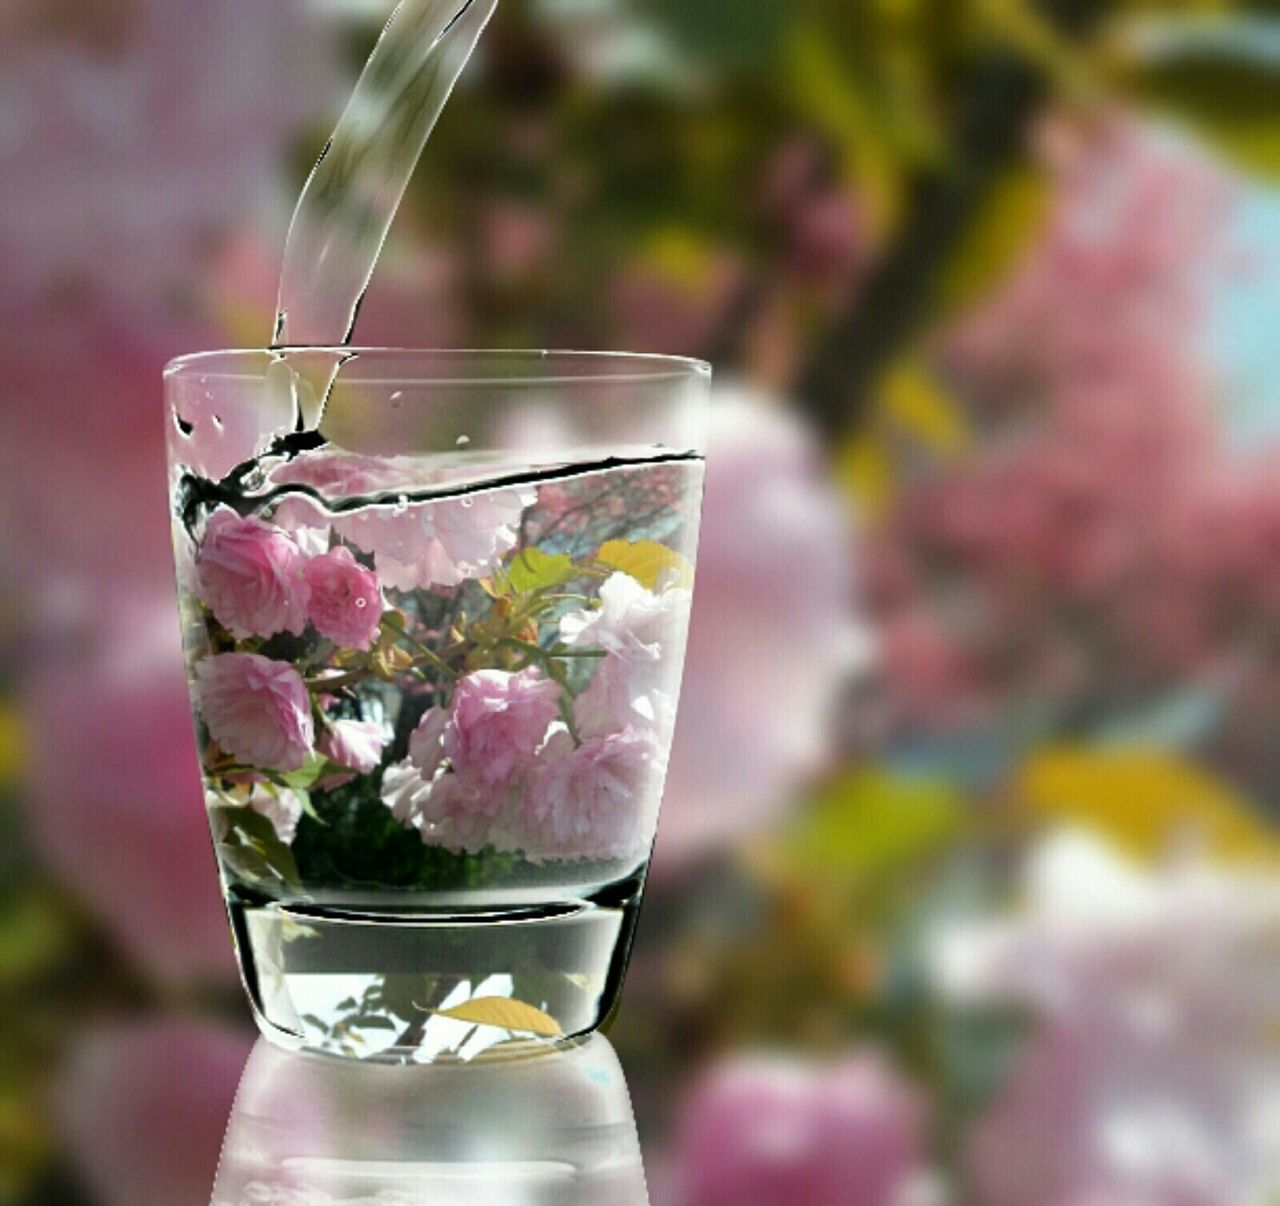 Wateringflowers Pip Pinkflowers Pour Refreshed Glassofwater Pipcamera EyeEm Hd Wallpapers Webdesign Screensaver